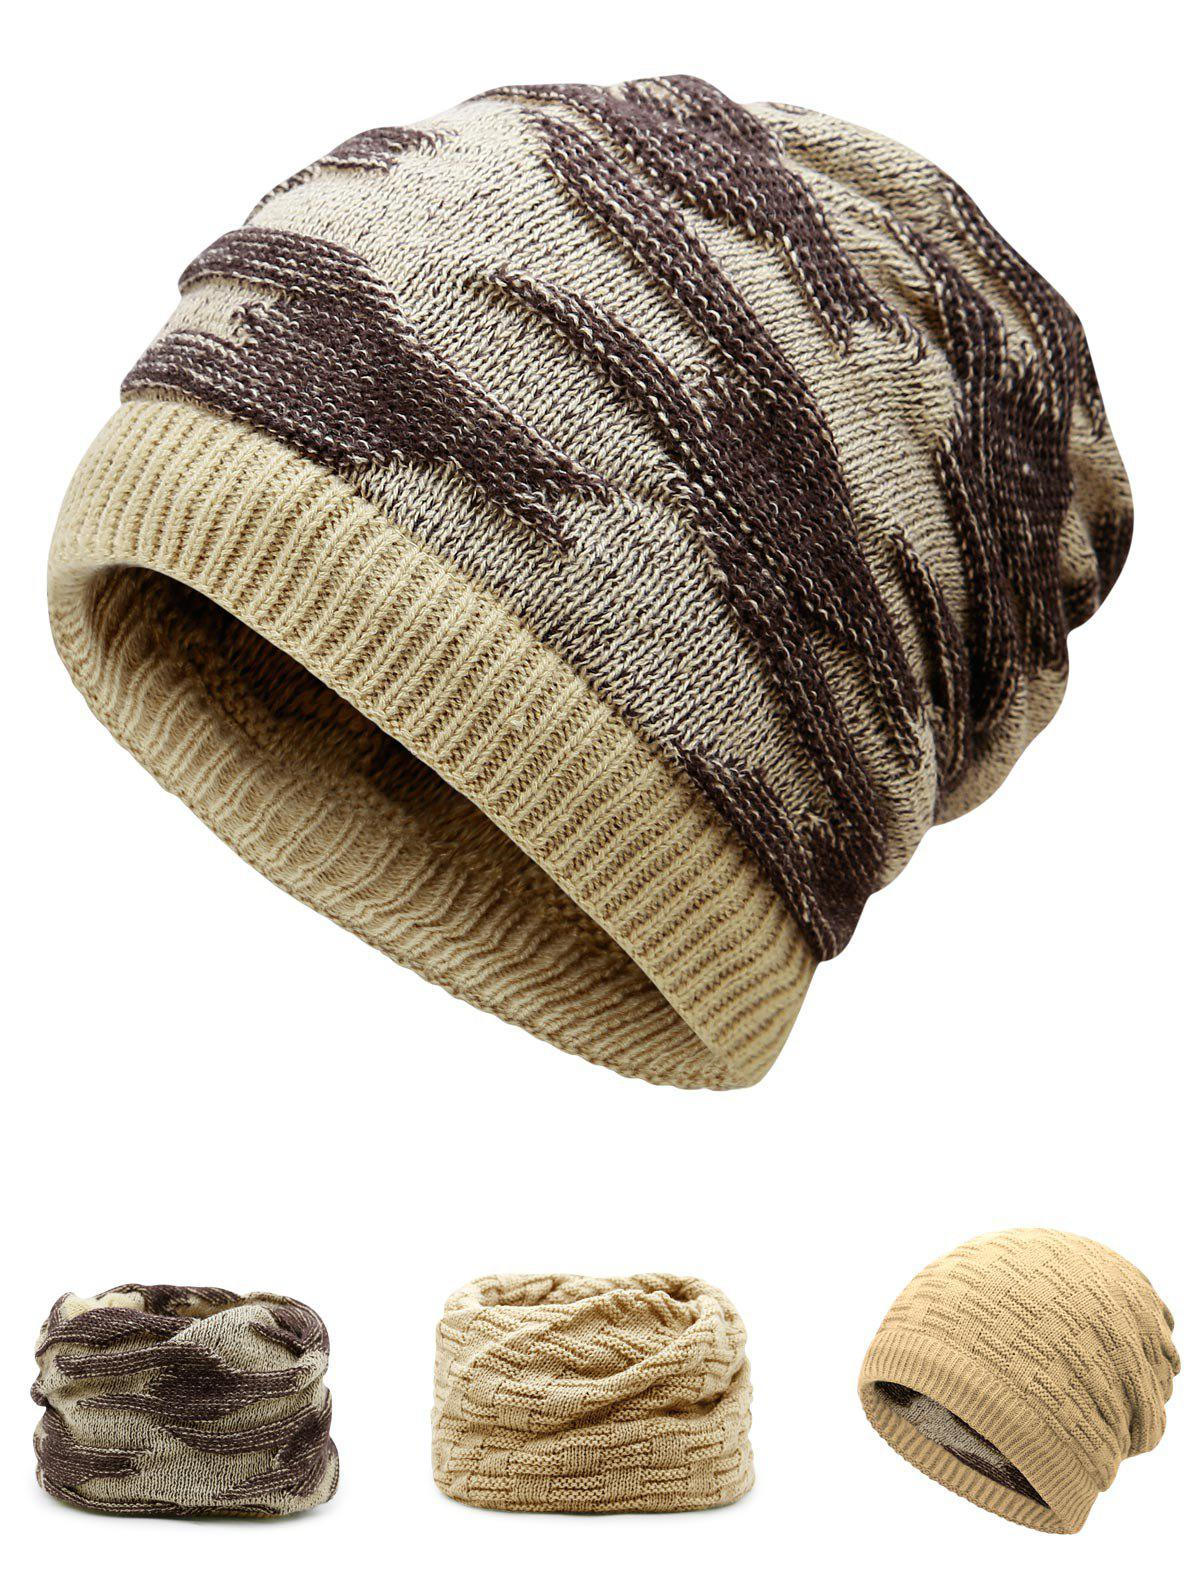 Multifunctional Ponytail Thicken Knitted Beanie Hat - PALOMINO